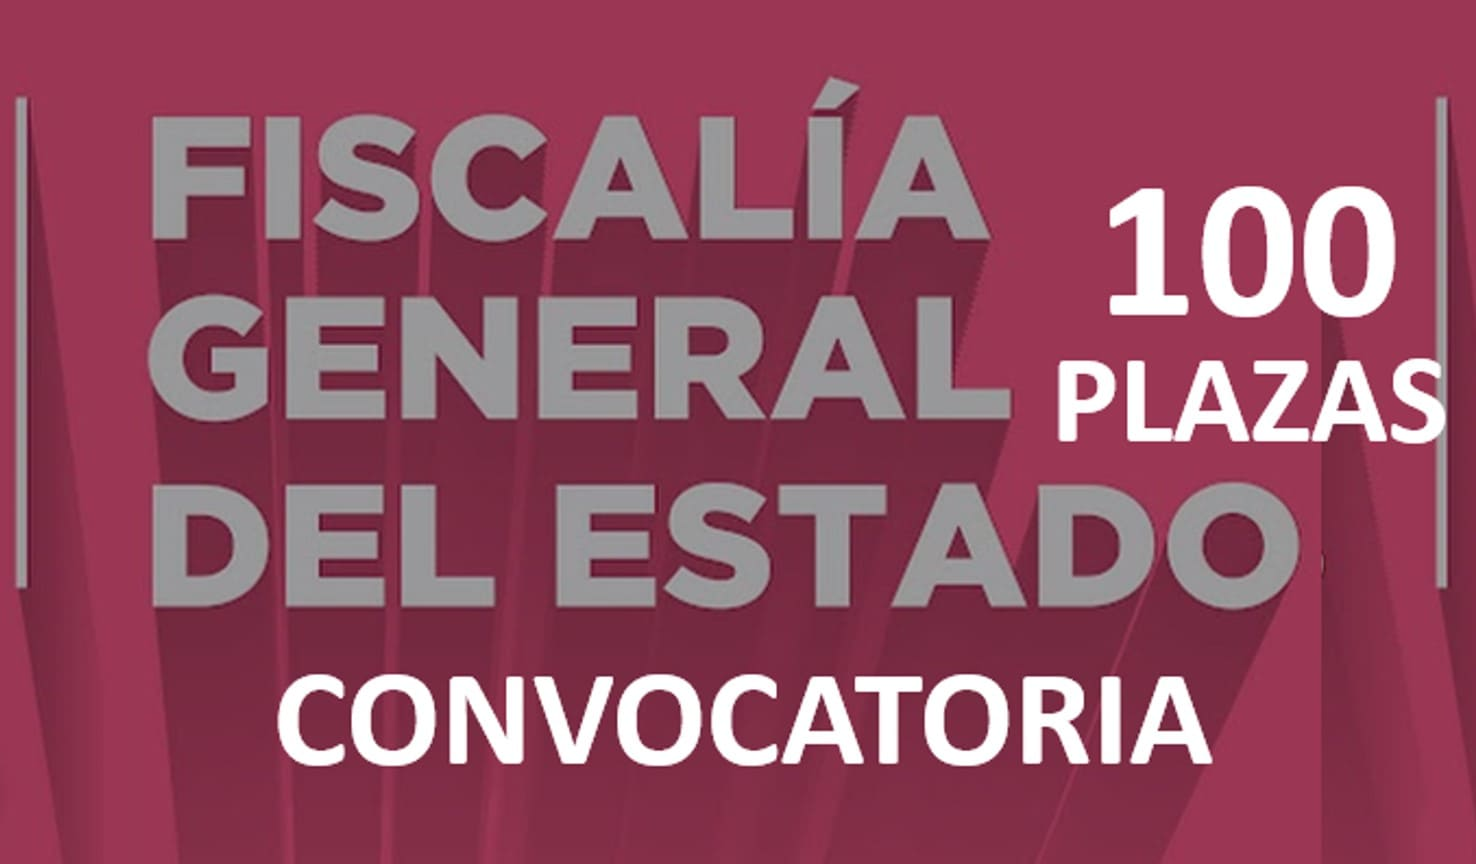 Photo of Plazas en FGE; Convocatorias 2020